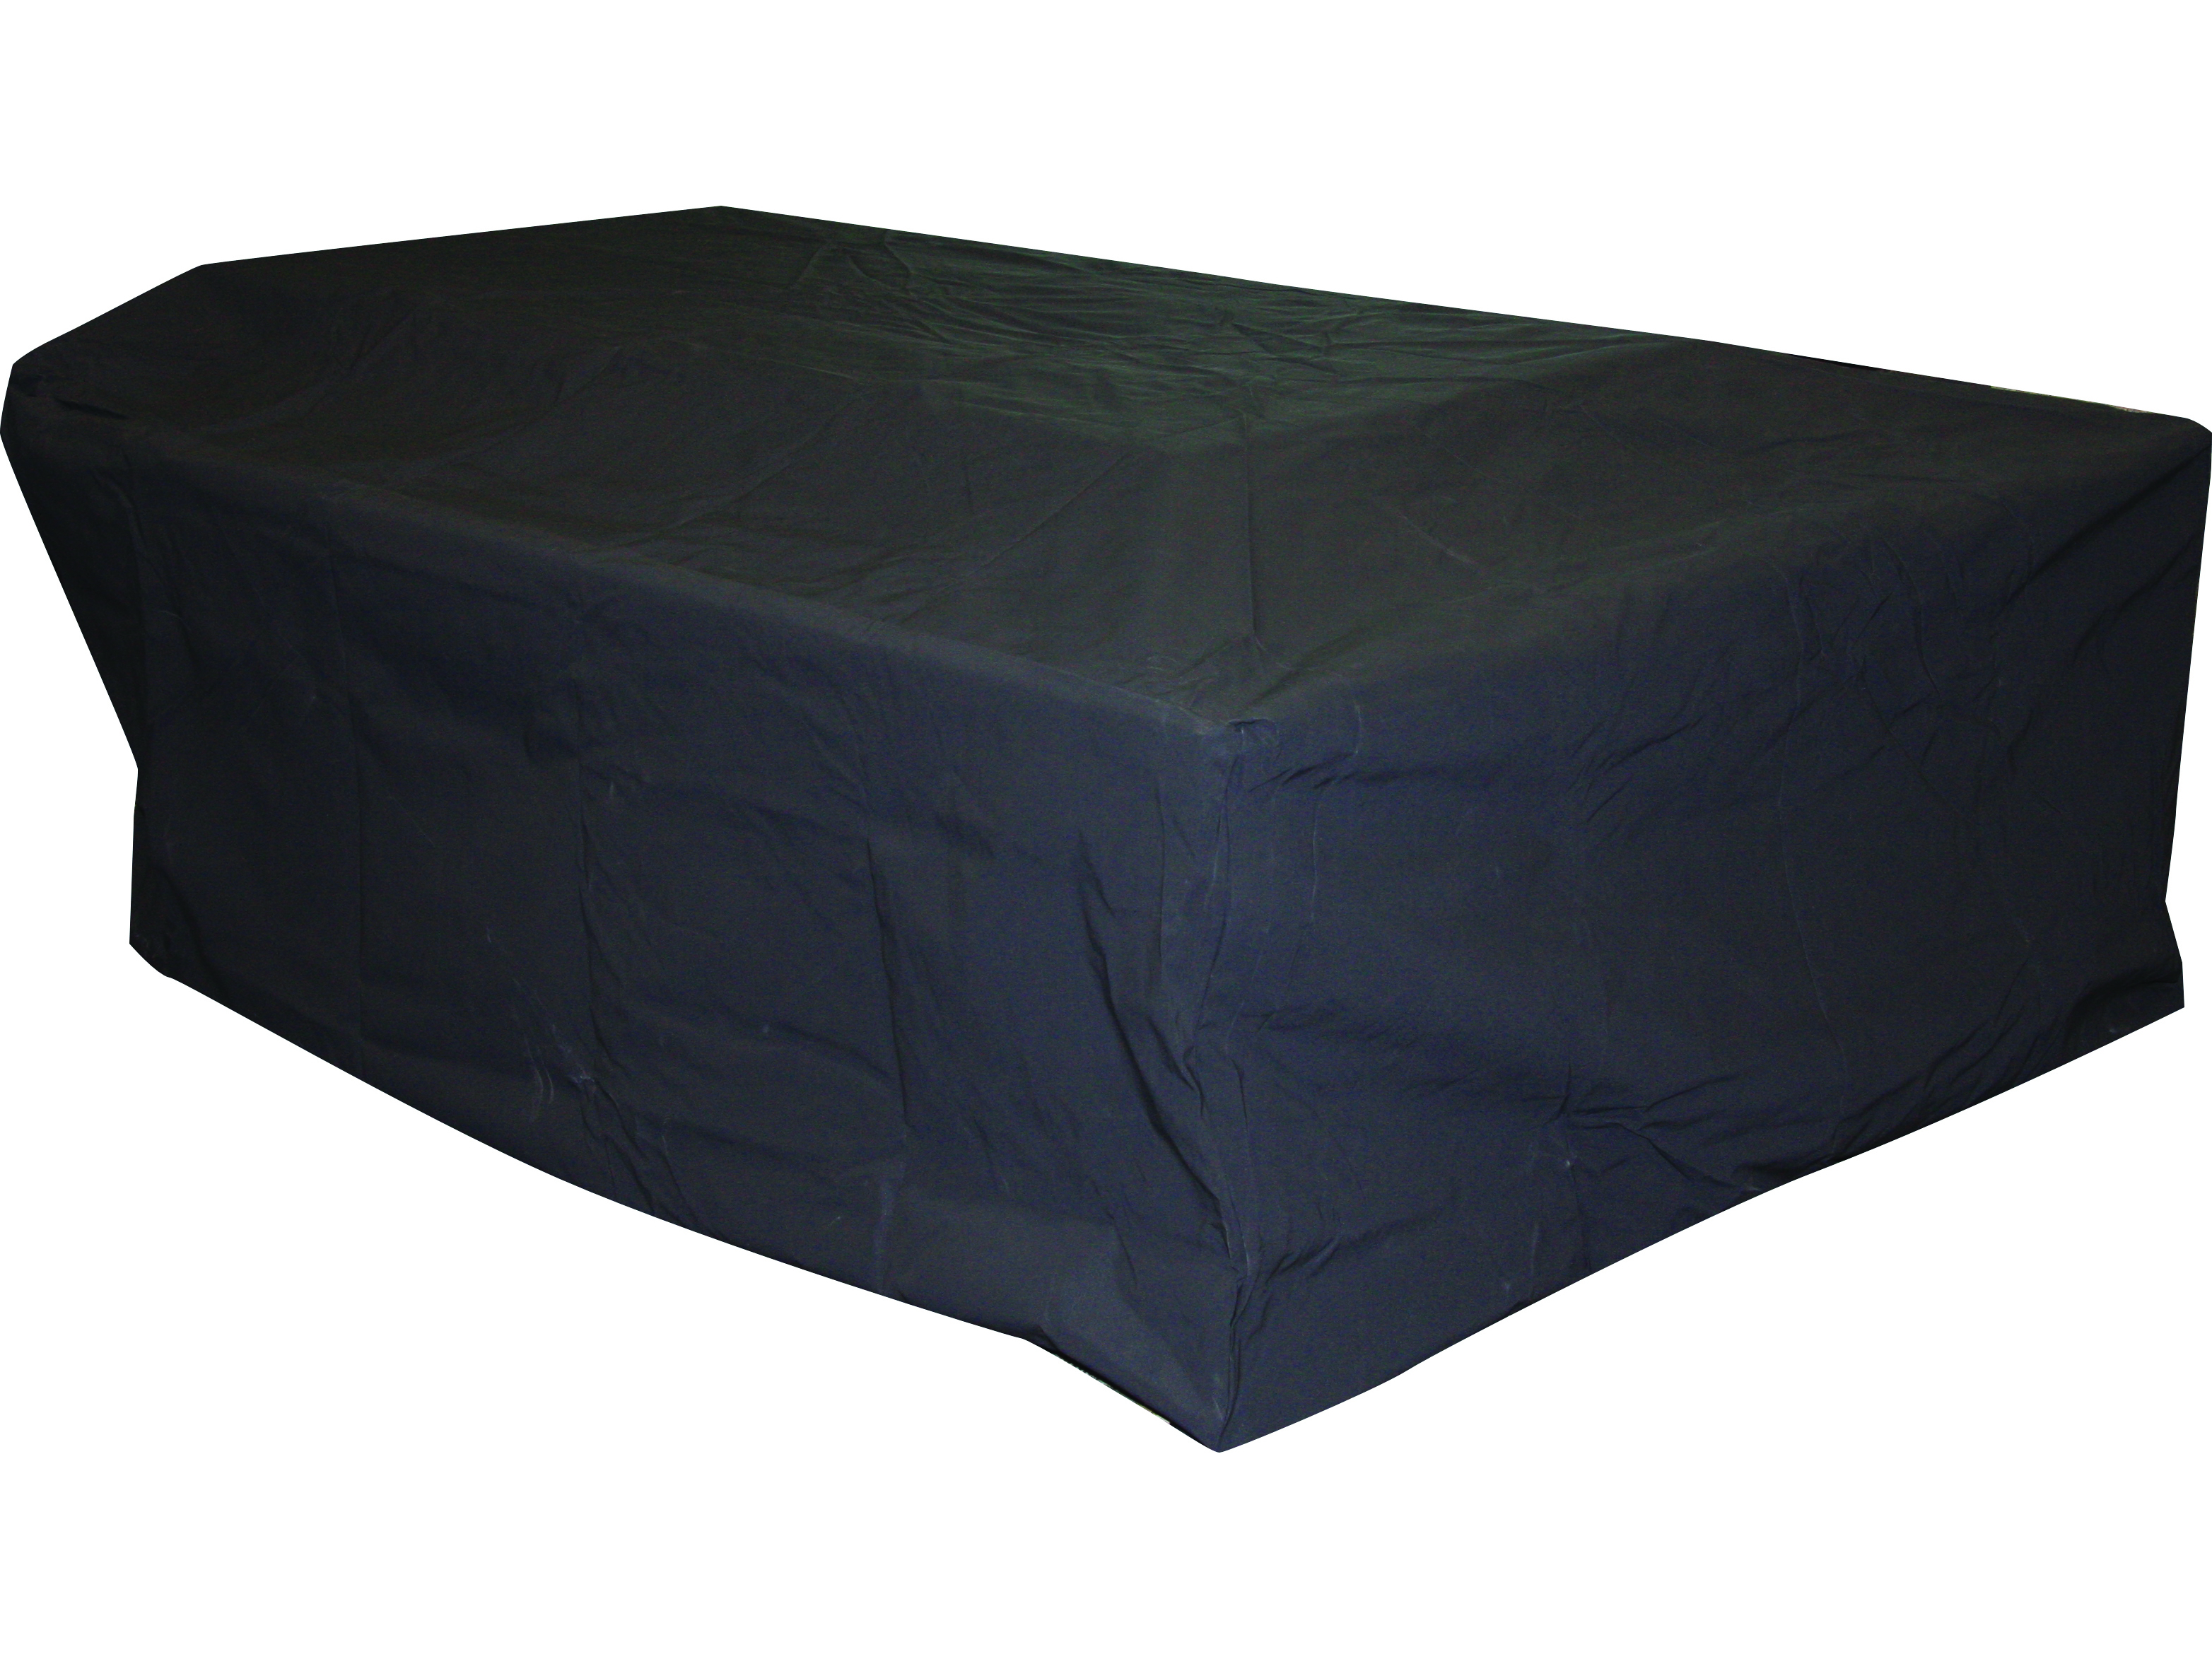 Homecrest 52 X 32 Rectangular Fire Table Cover 006139